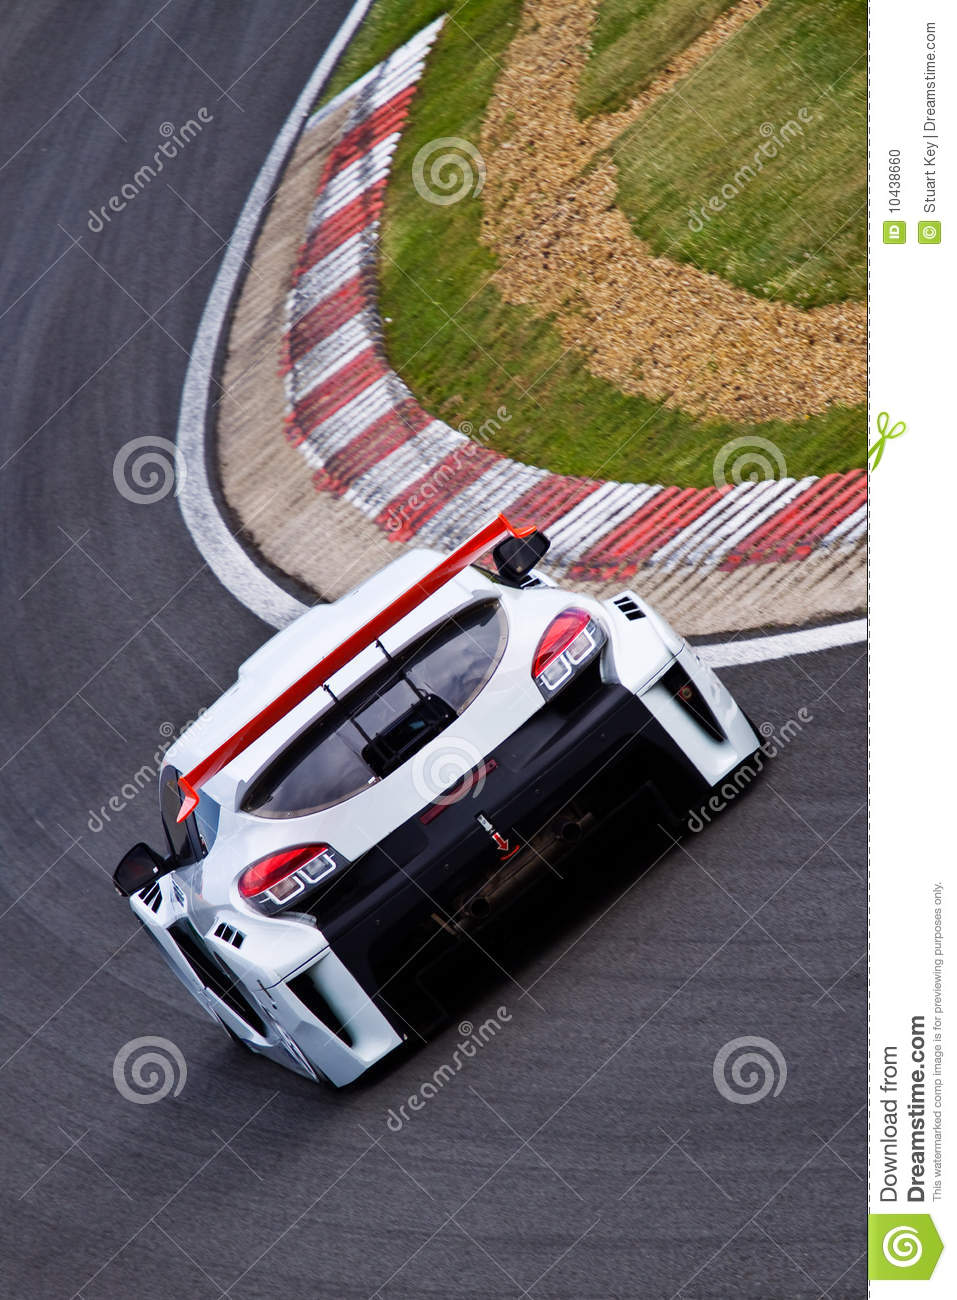 Touring car on track